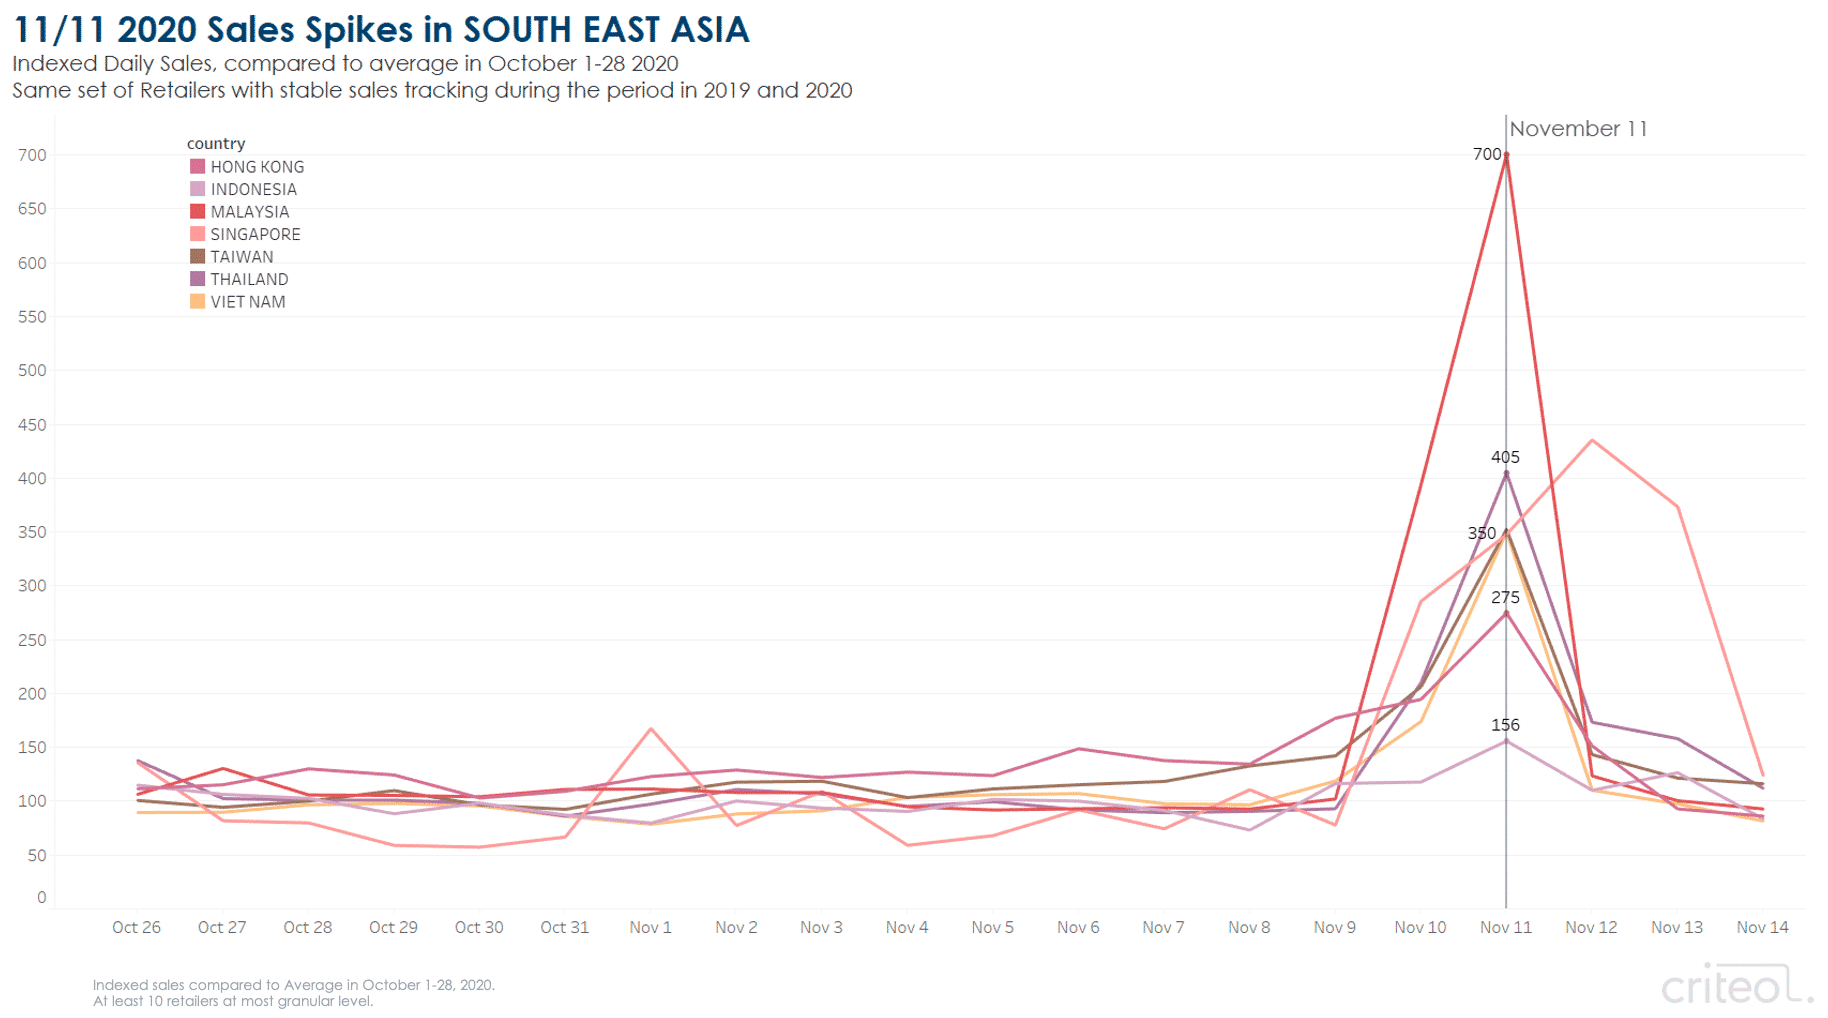 Singles' Day sales spikes in Southeast Asia.